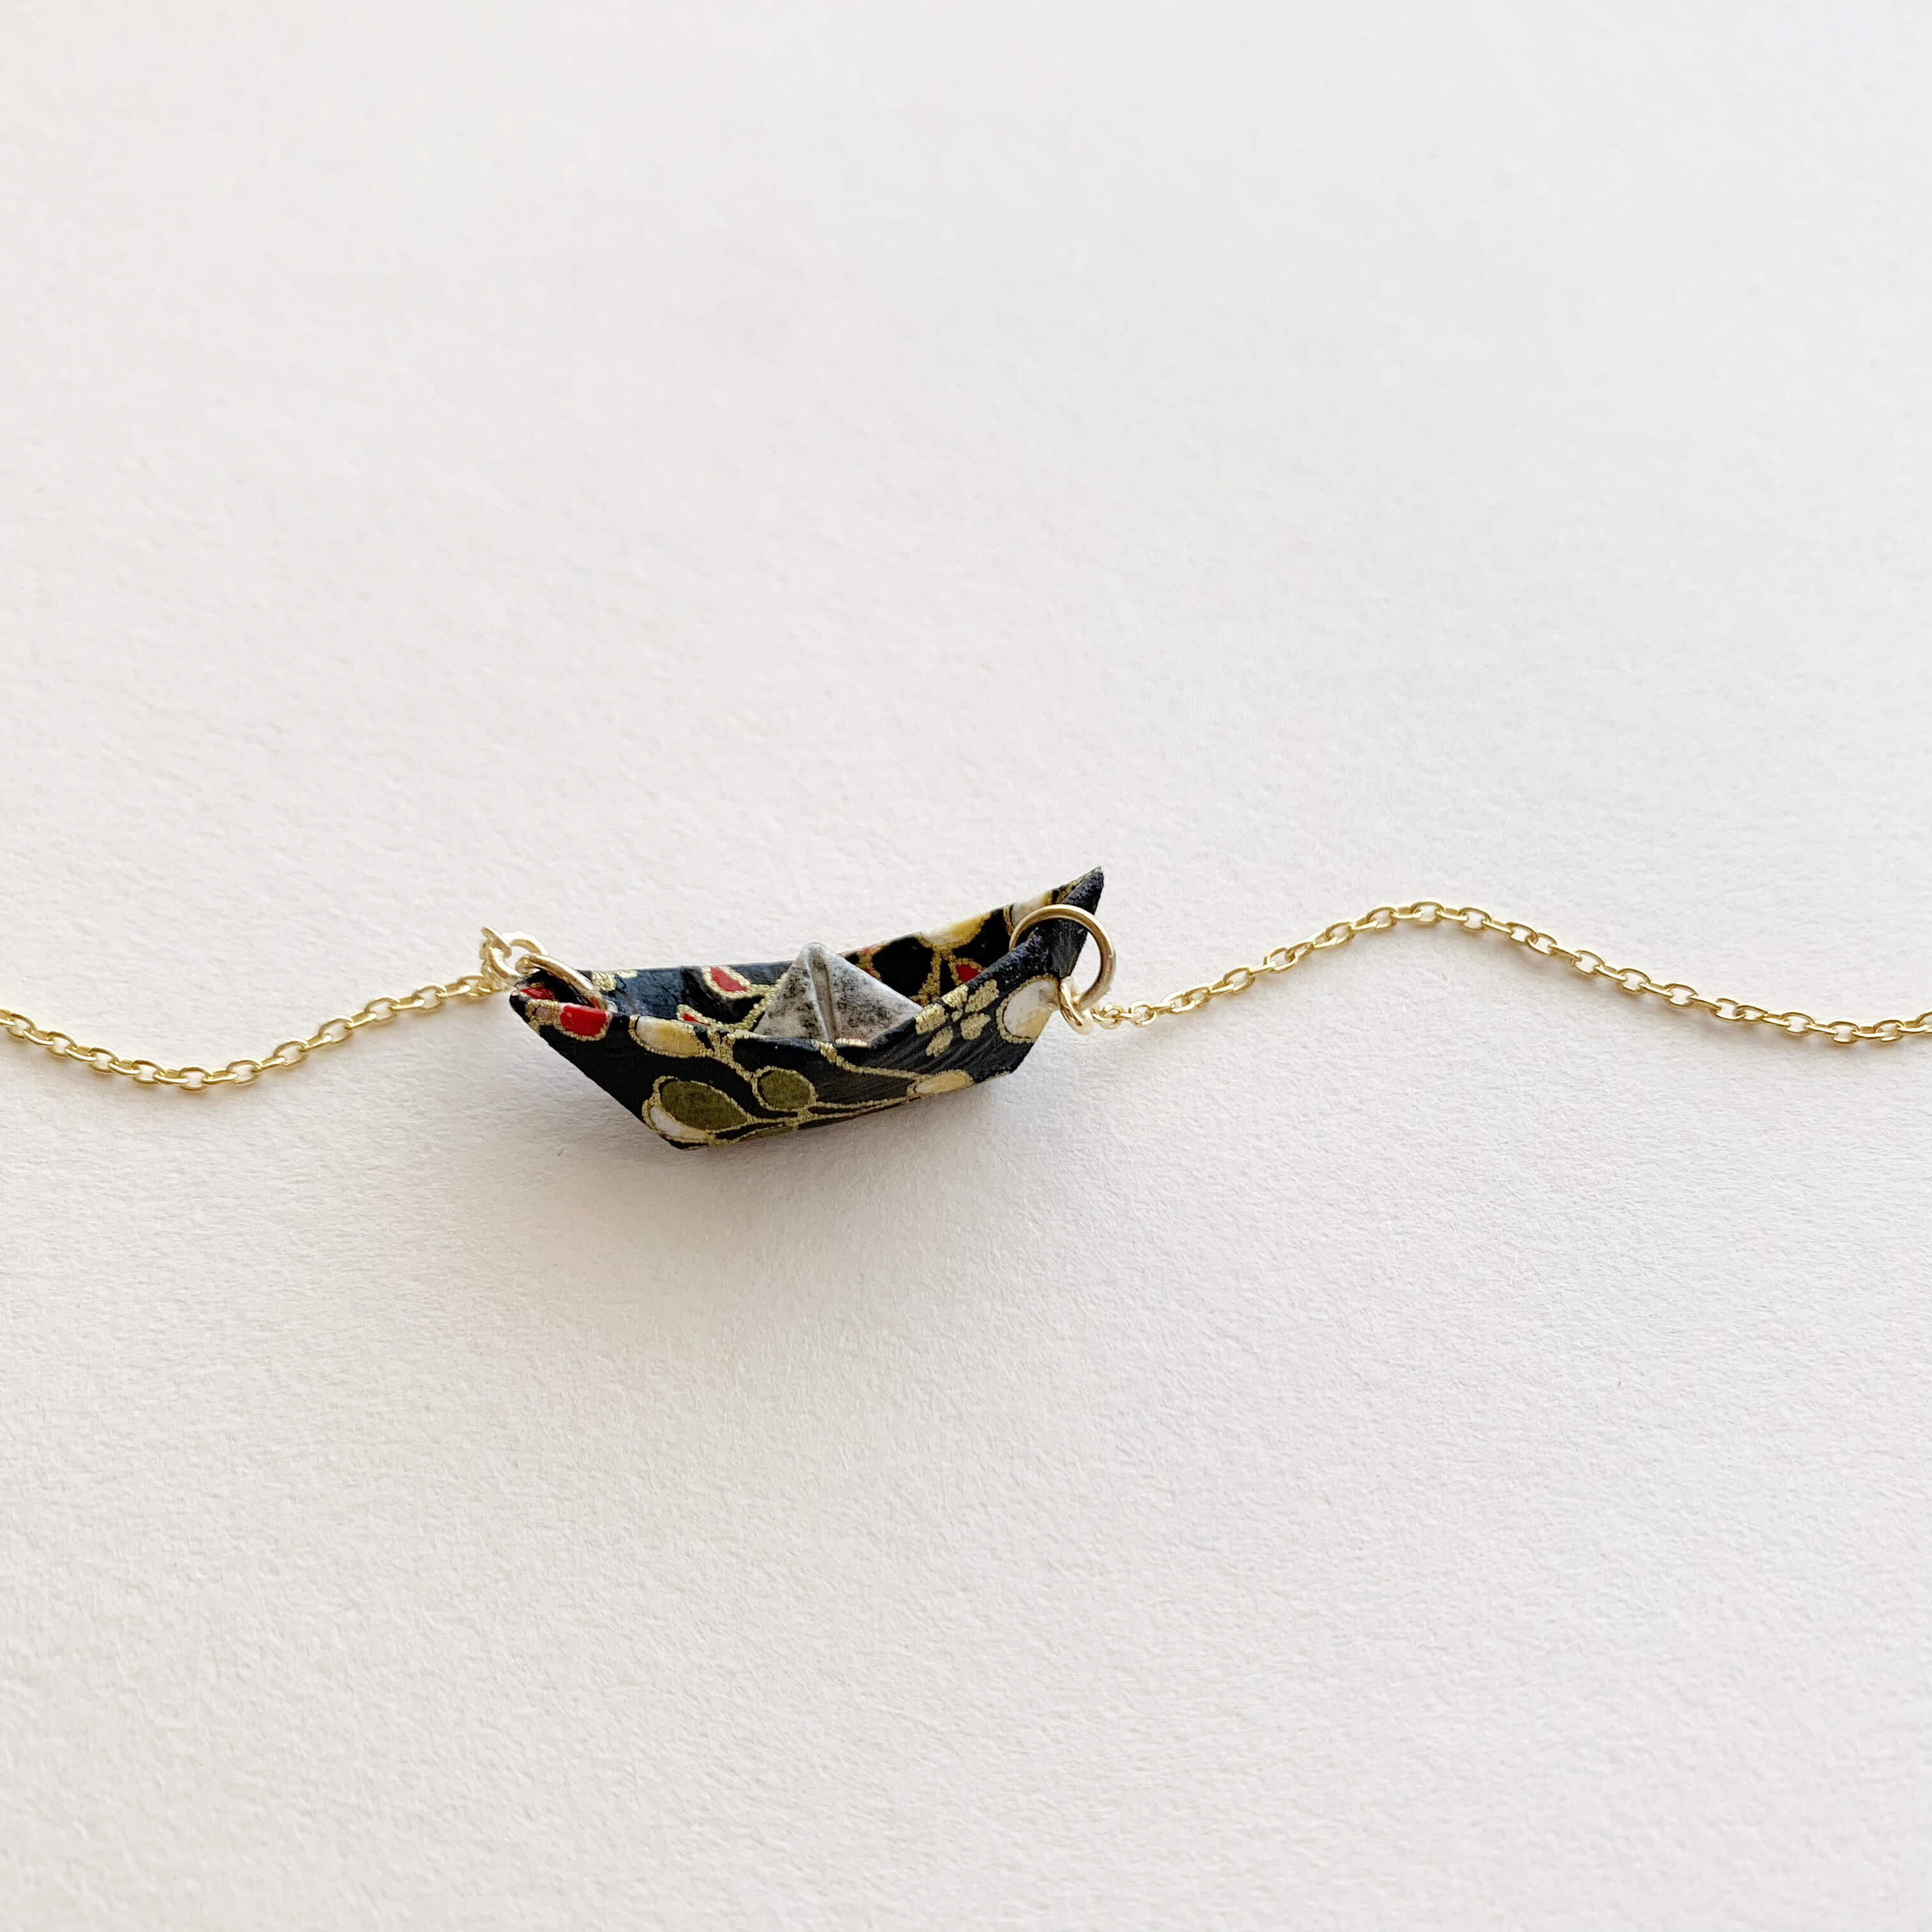 Handmade origami boat in gold plated necklace